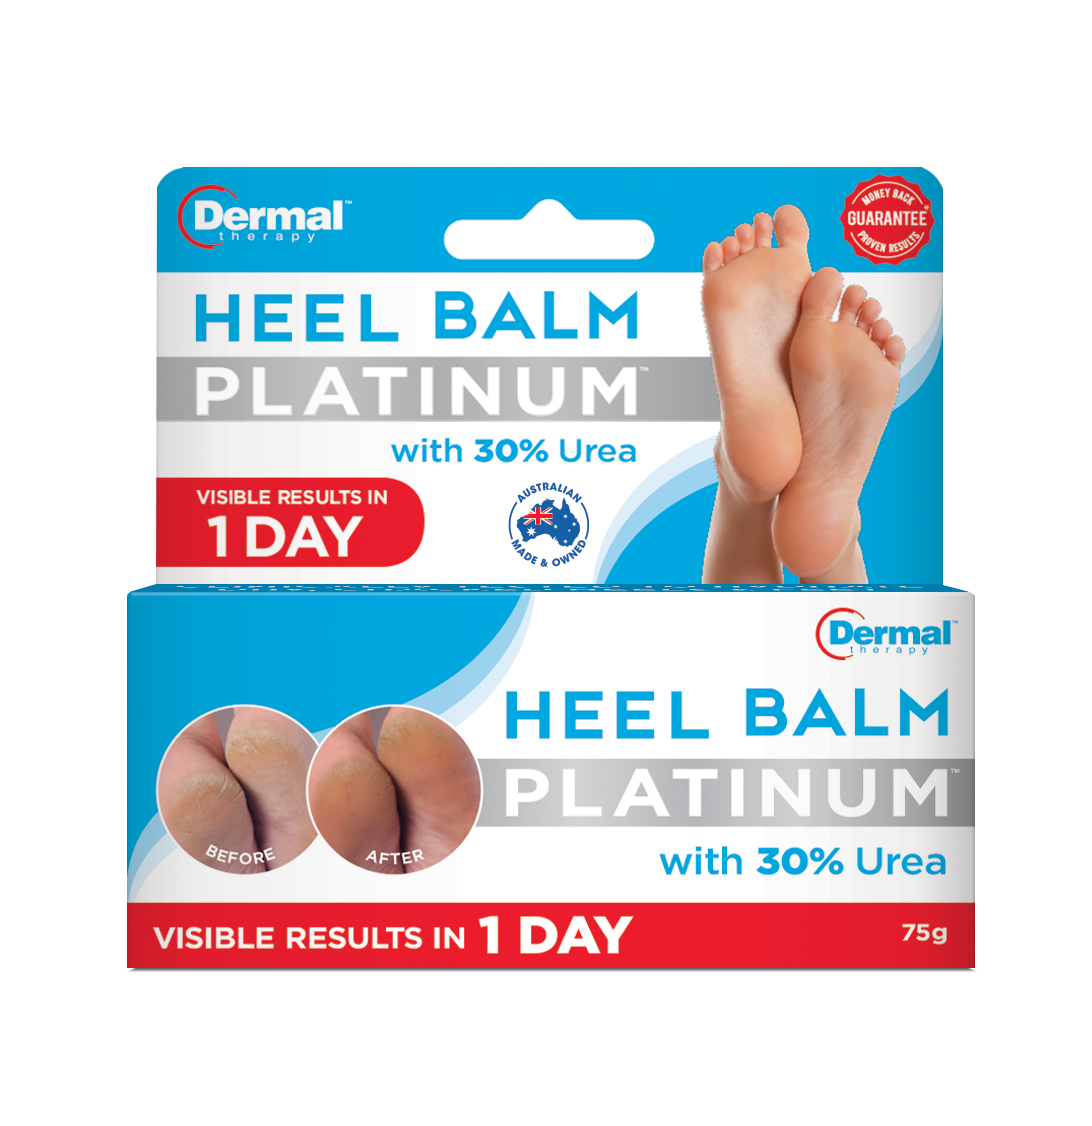 Front Of Dermal Therapy Heel Balm Platinum Box|Progress Shots Following Dermal Therapy Heel Balm Platinum Treatment|Box Of Dermal Therapy Heel Balm Platinum